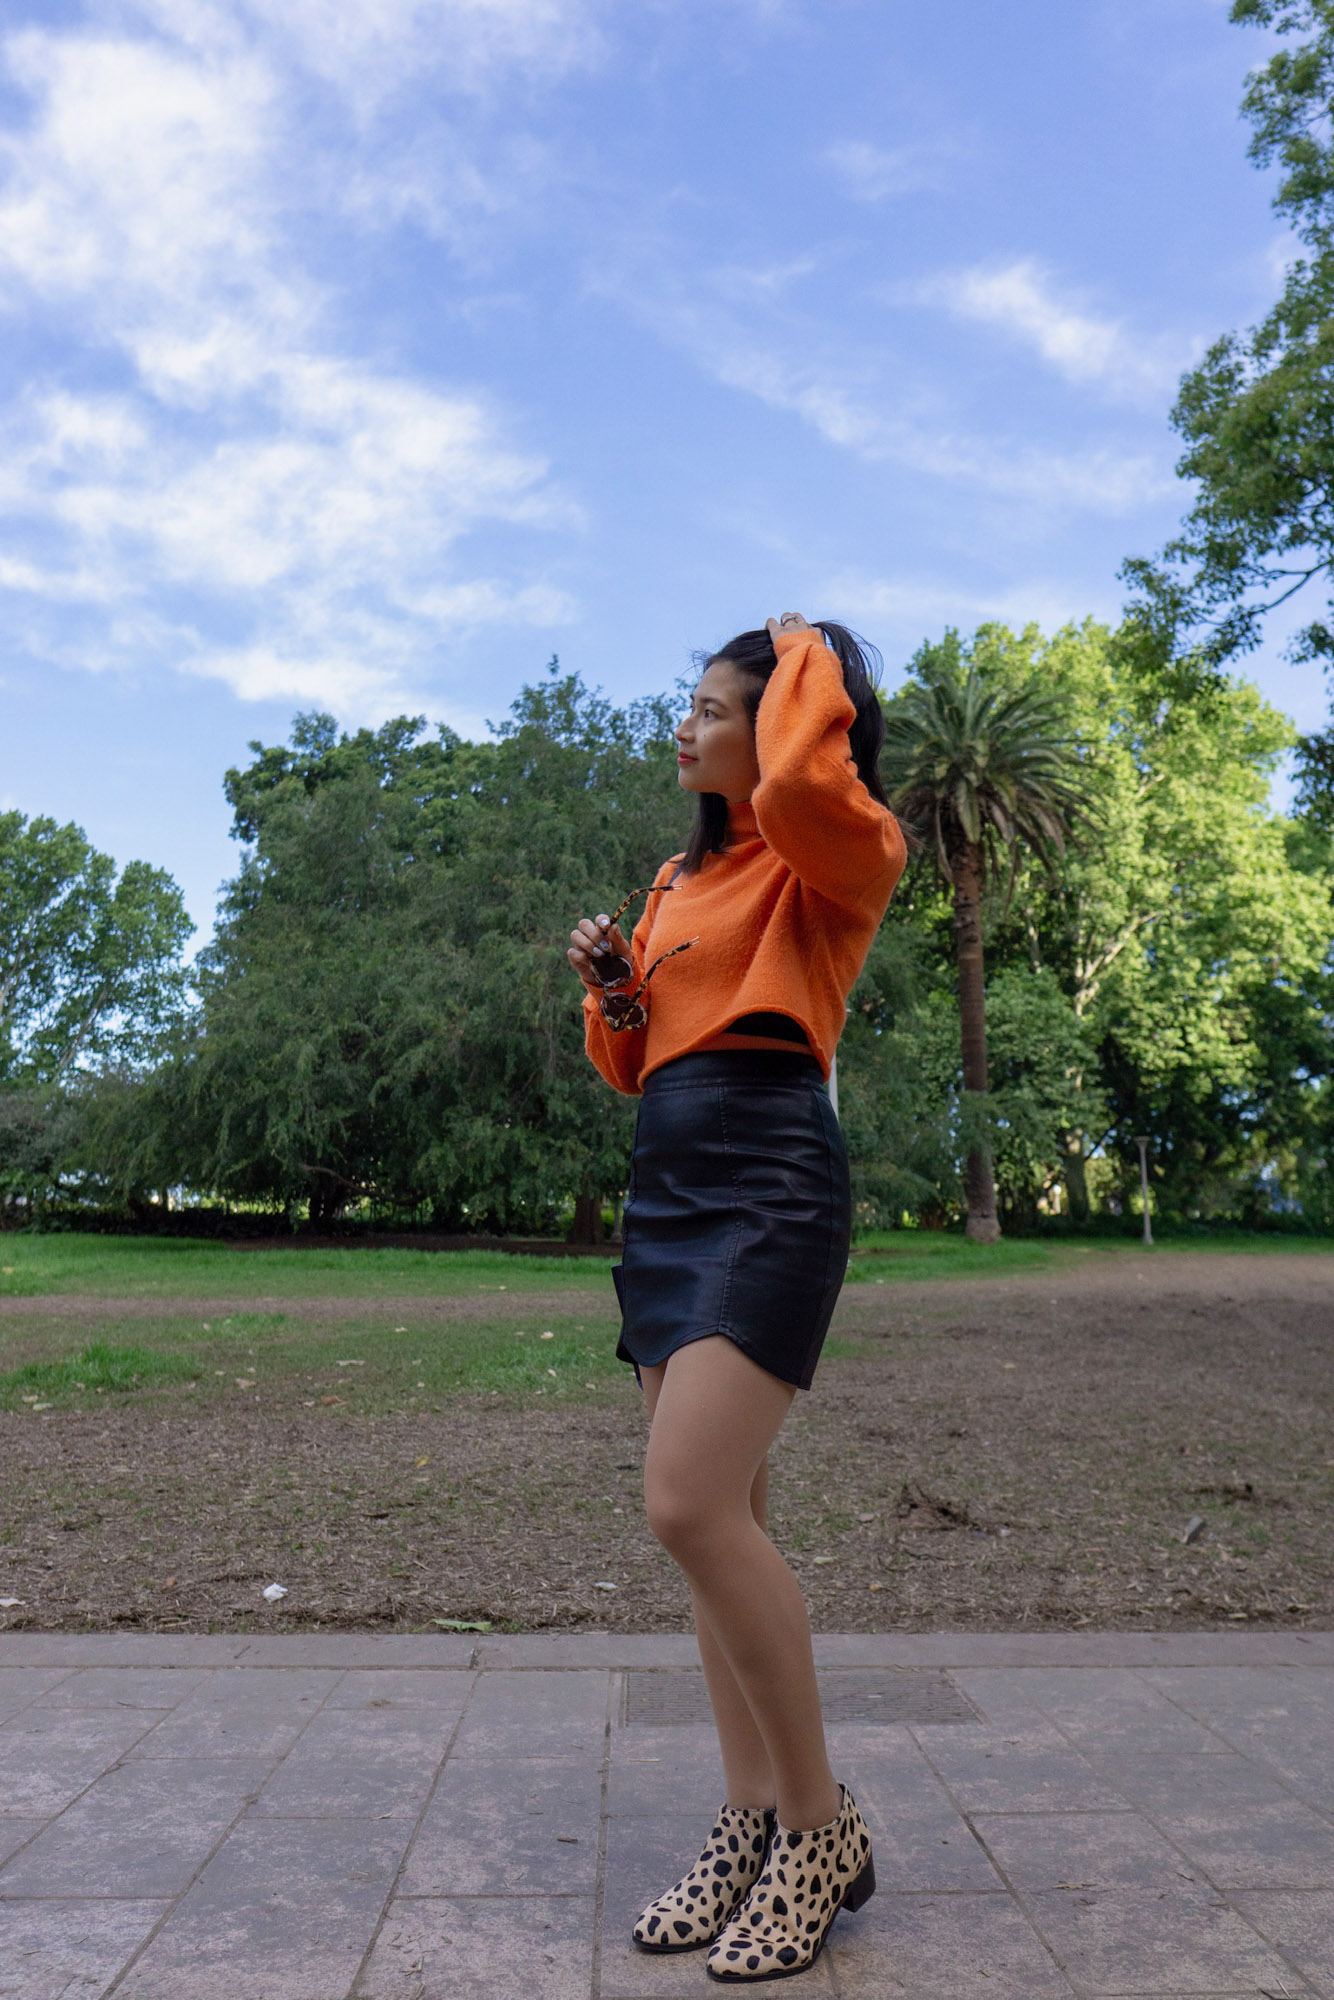 A woman with short dark hair, standing in a park during the day. She is wearing a bright orange sweater and a black skirt. Her boots have black spots resembling a giraffe print